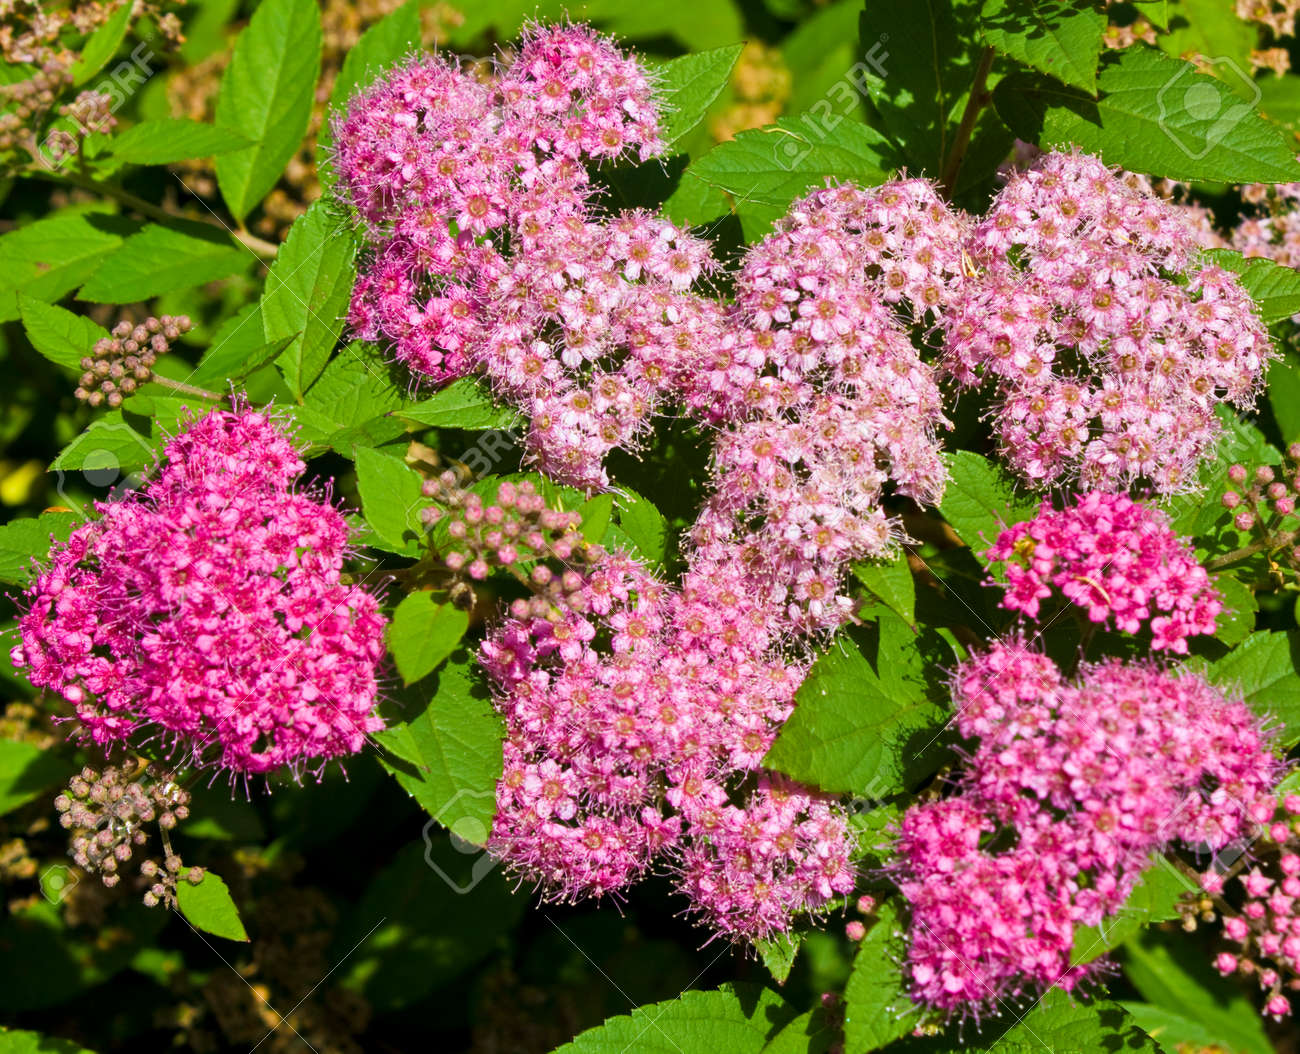 Few Pink Flowers Of Japanese Spirea With Green Leaves Stock Photo